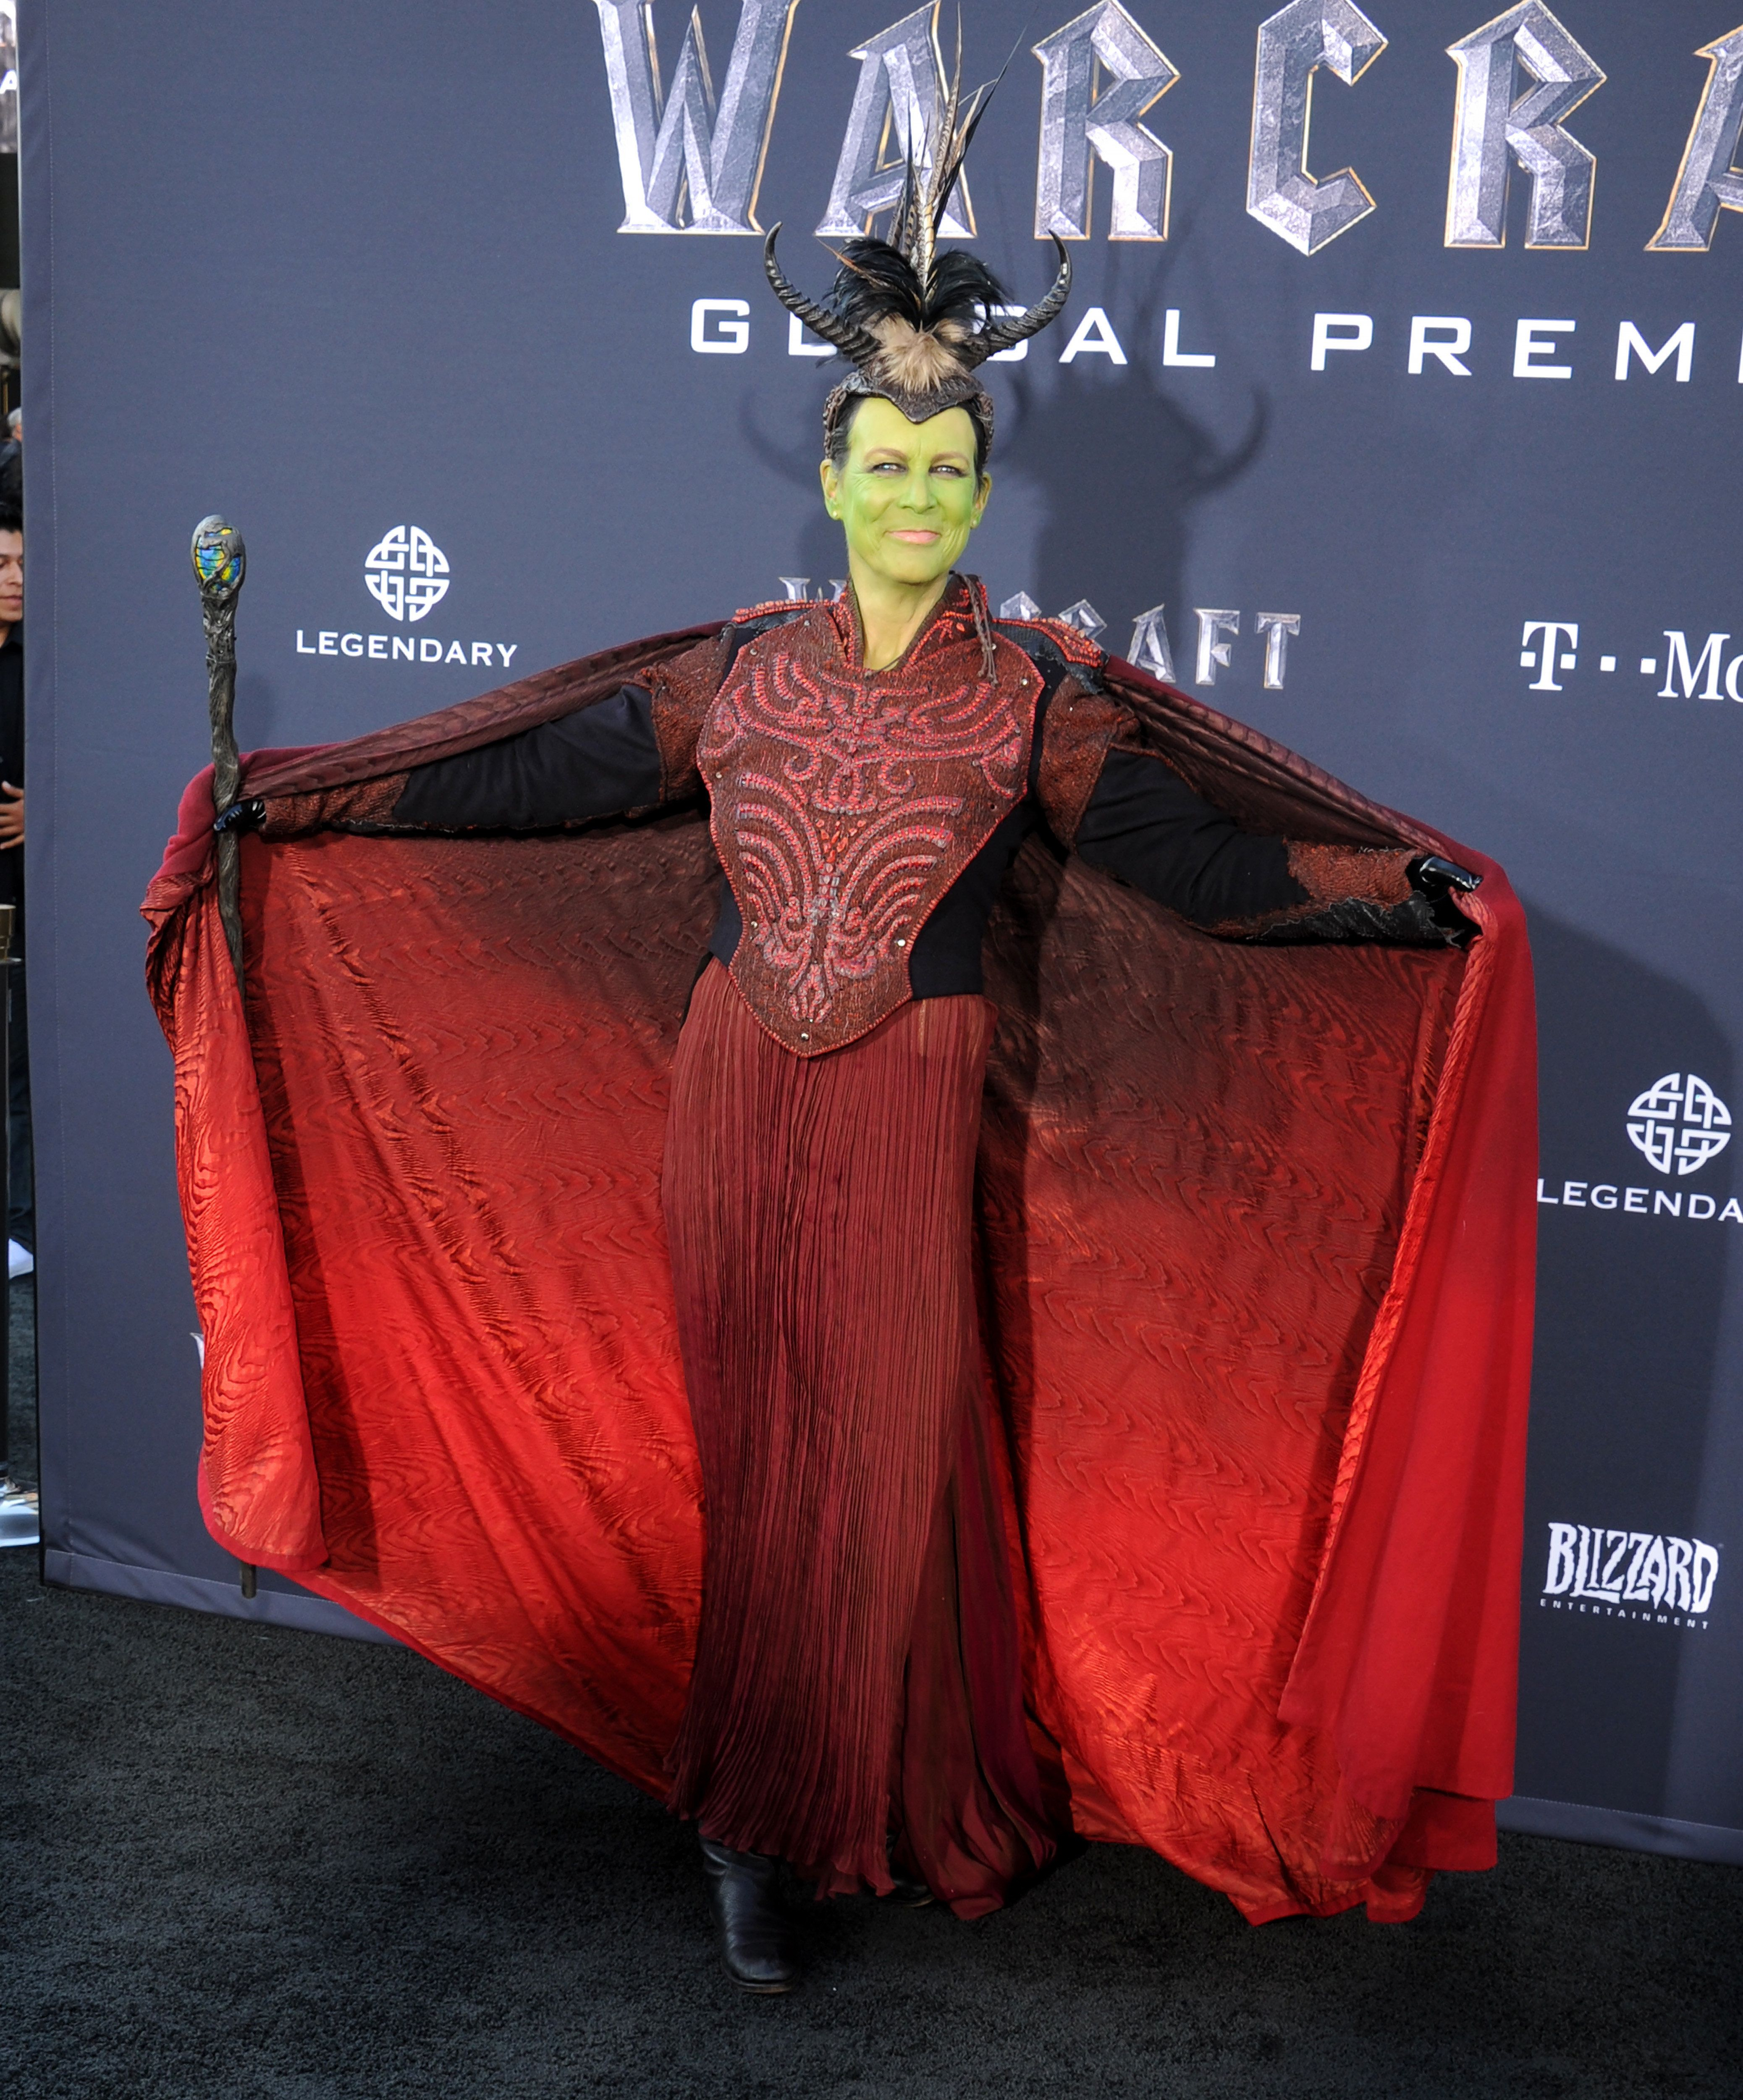 Jamie Lee Curtis Dresses As An Orc And Other Bizarre Celeb